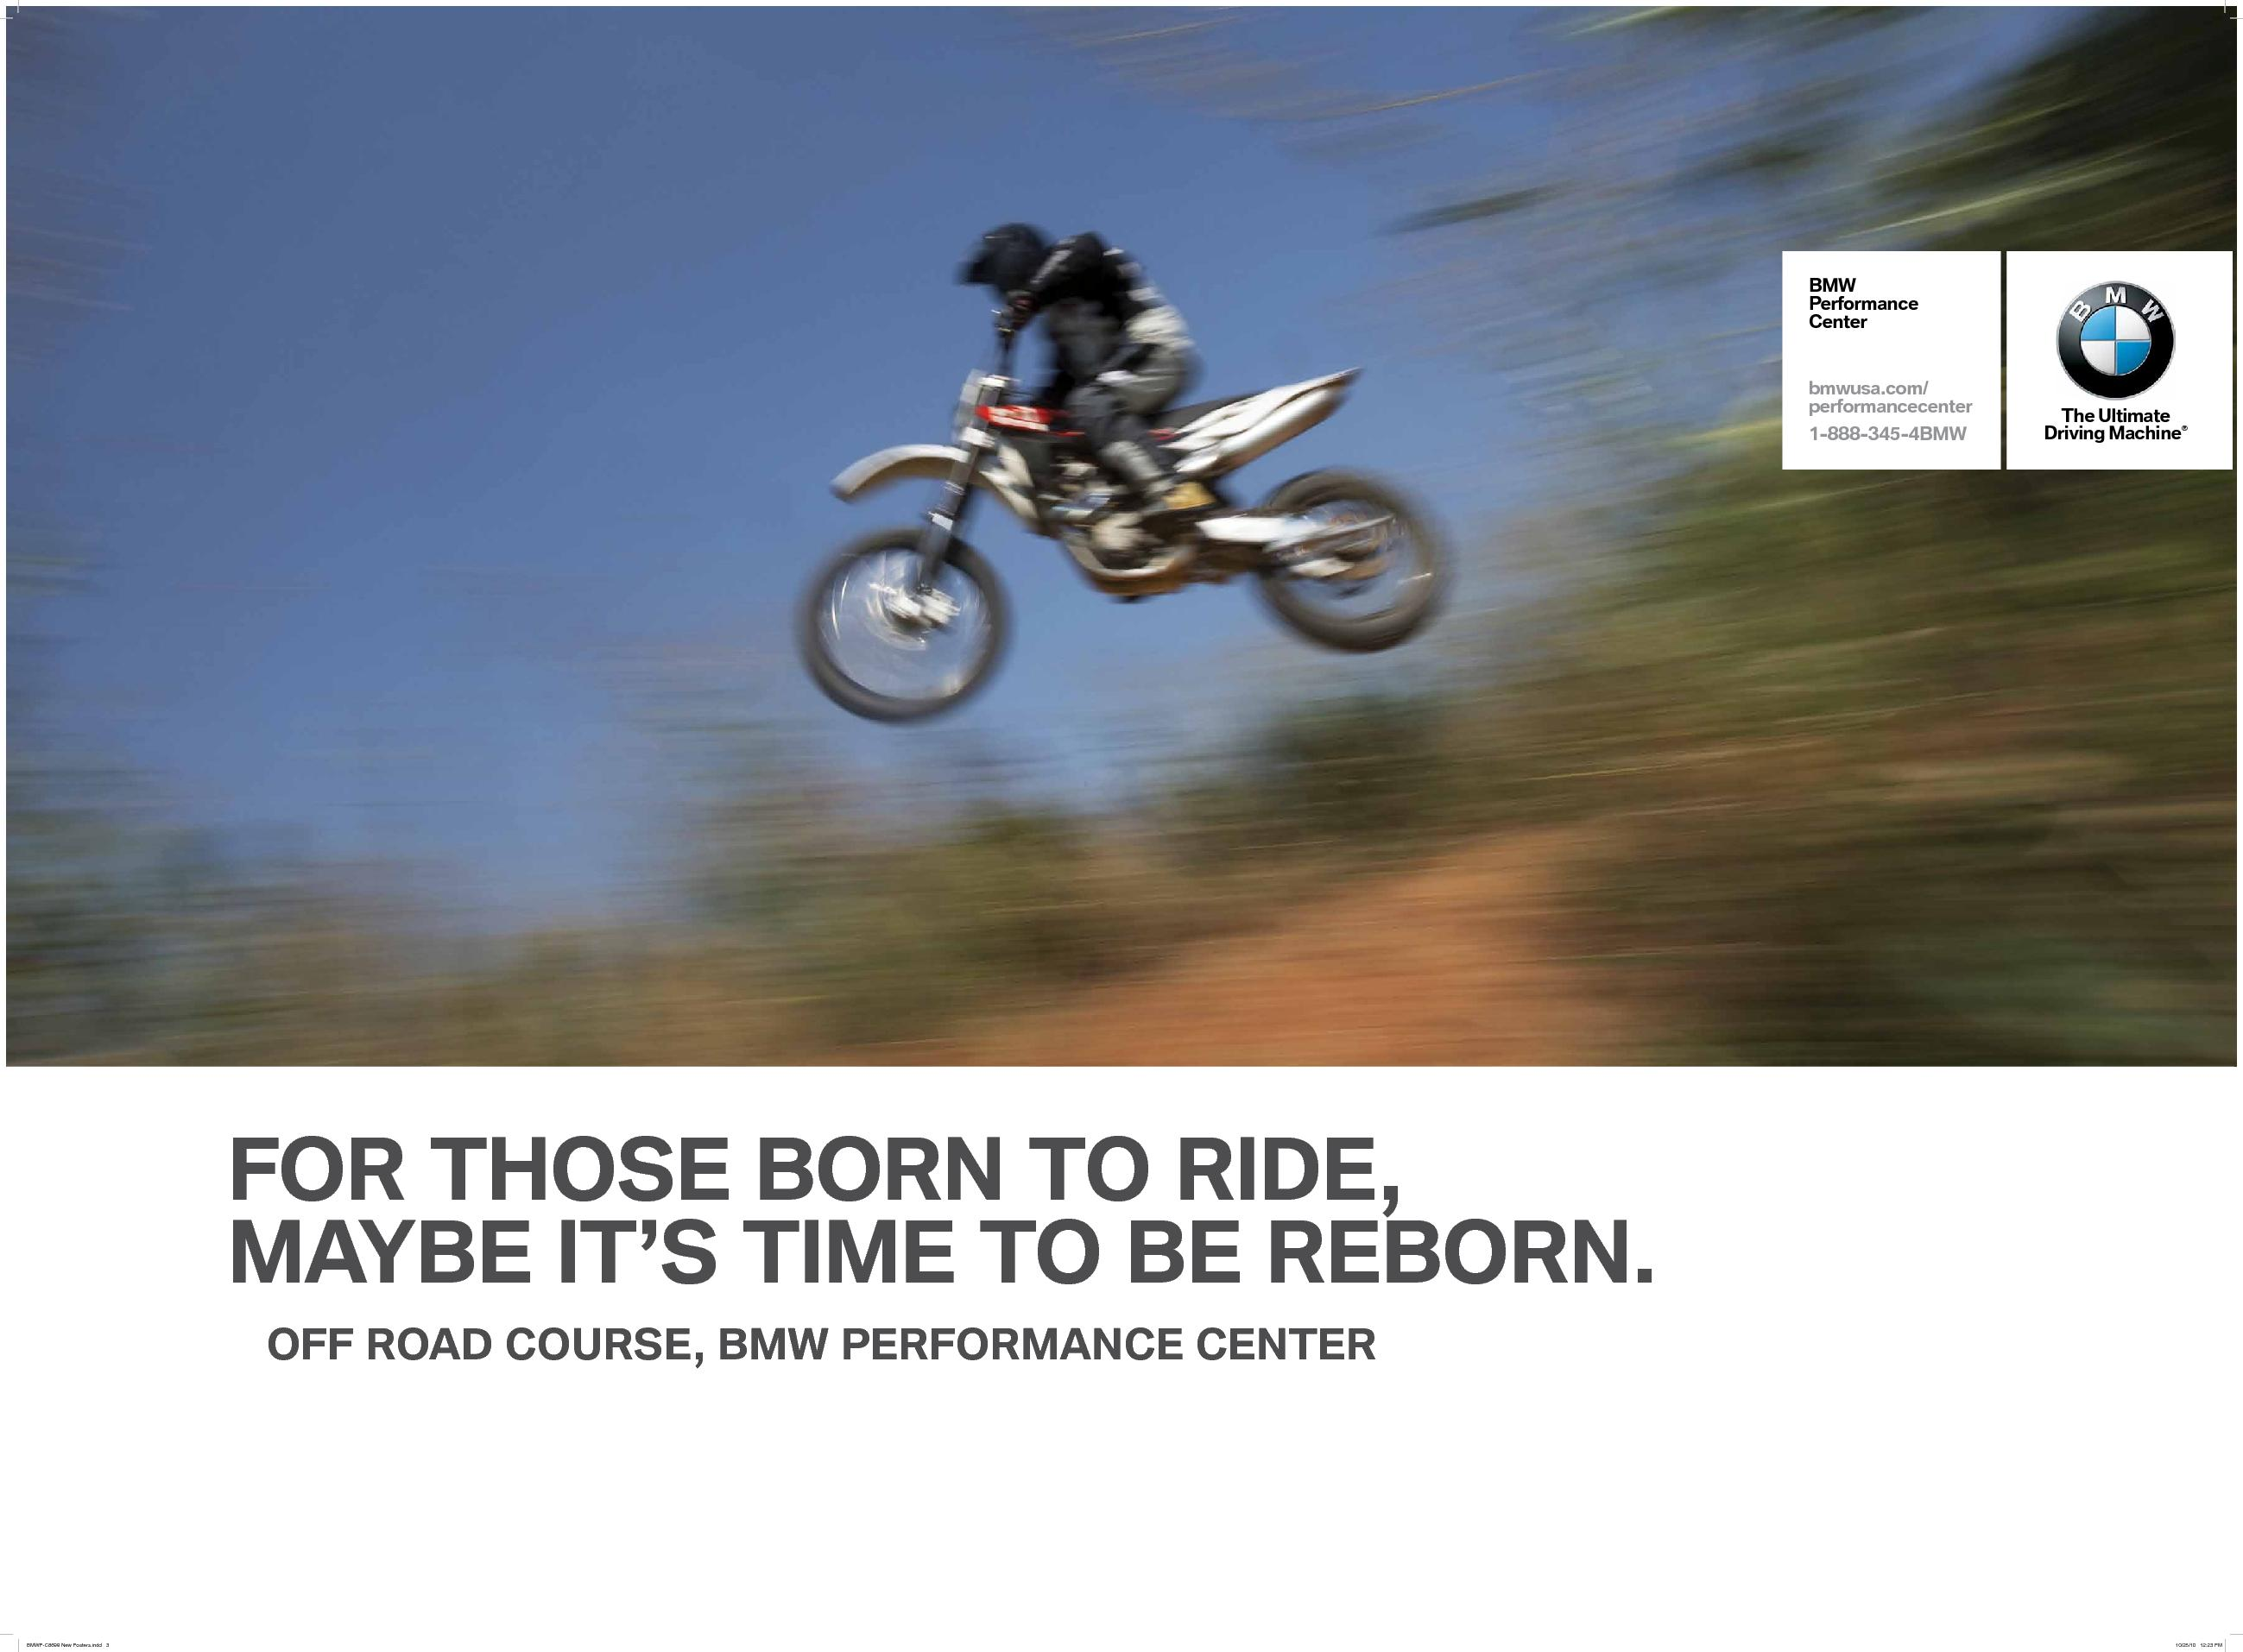 BMW-Performance-Center-advertising-copywriting-by-Lochness-Marketing-greenville-motorcycles